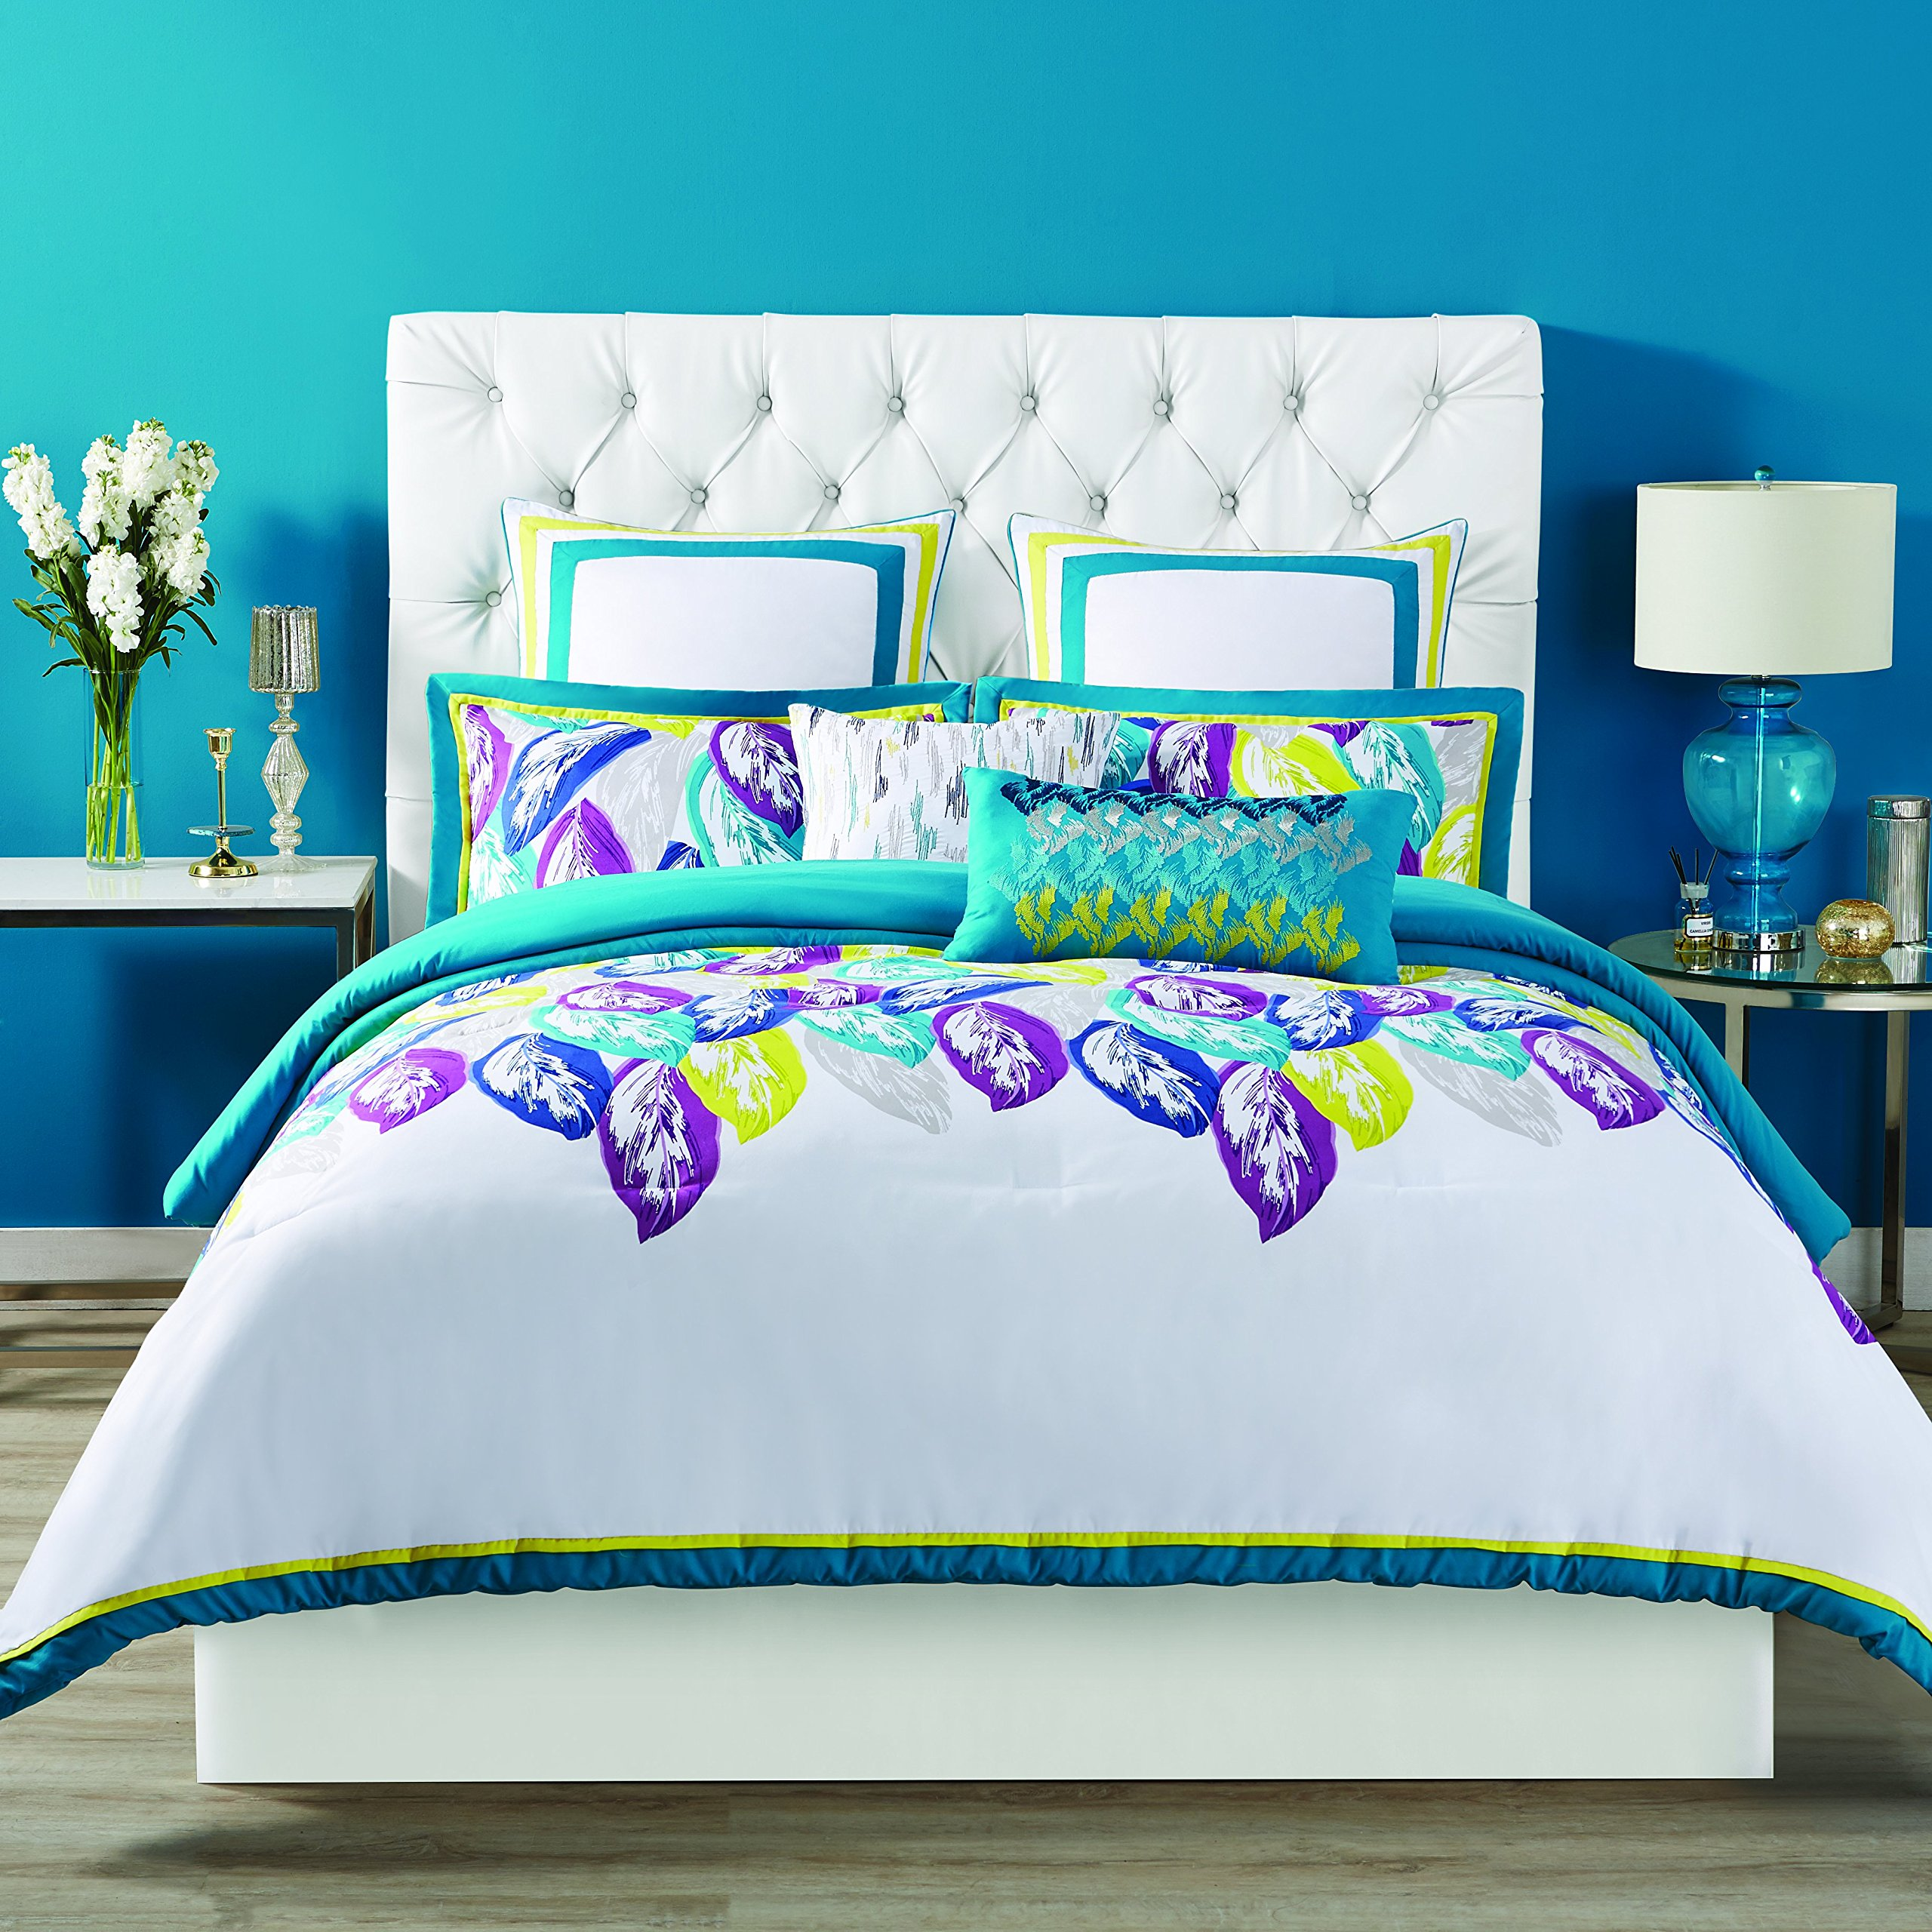 Christian Siriano Comforter Set, Full/Queen, Plume